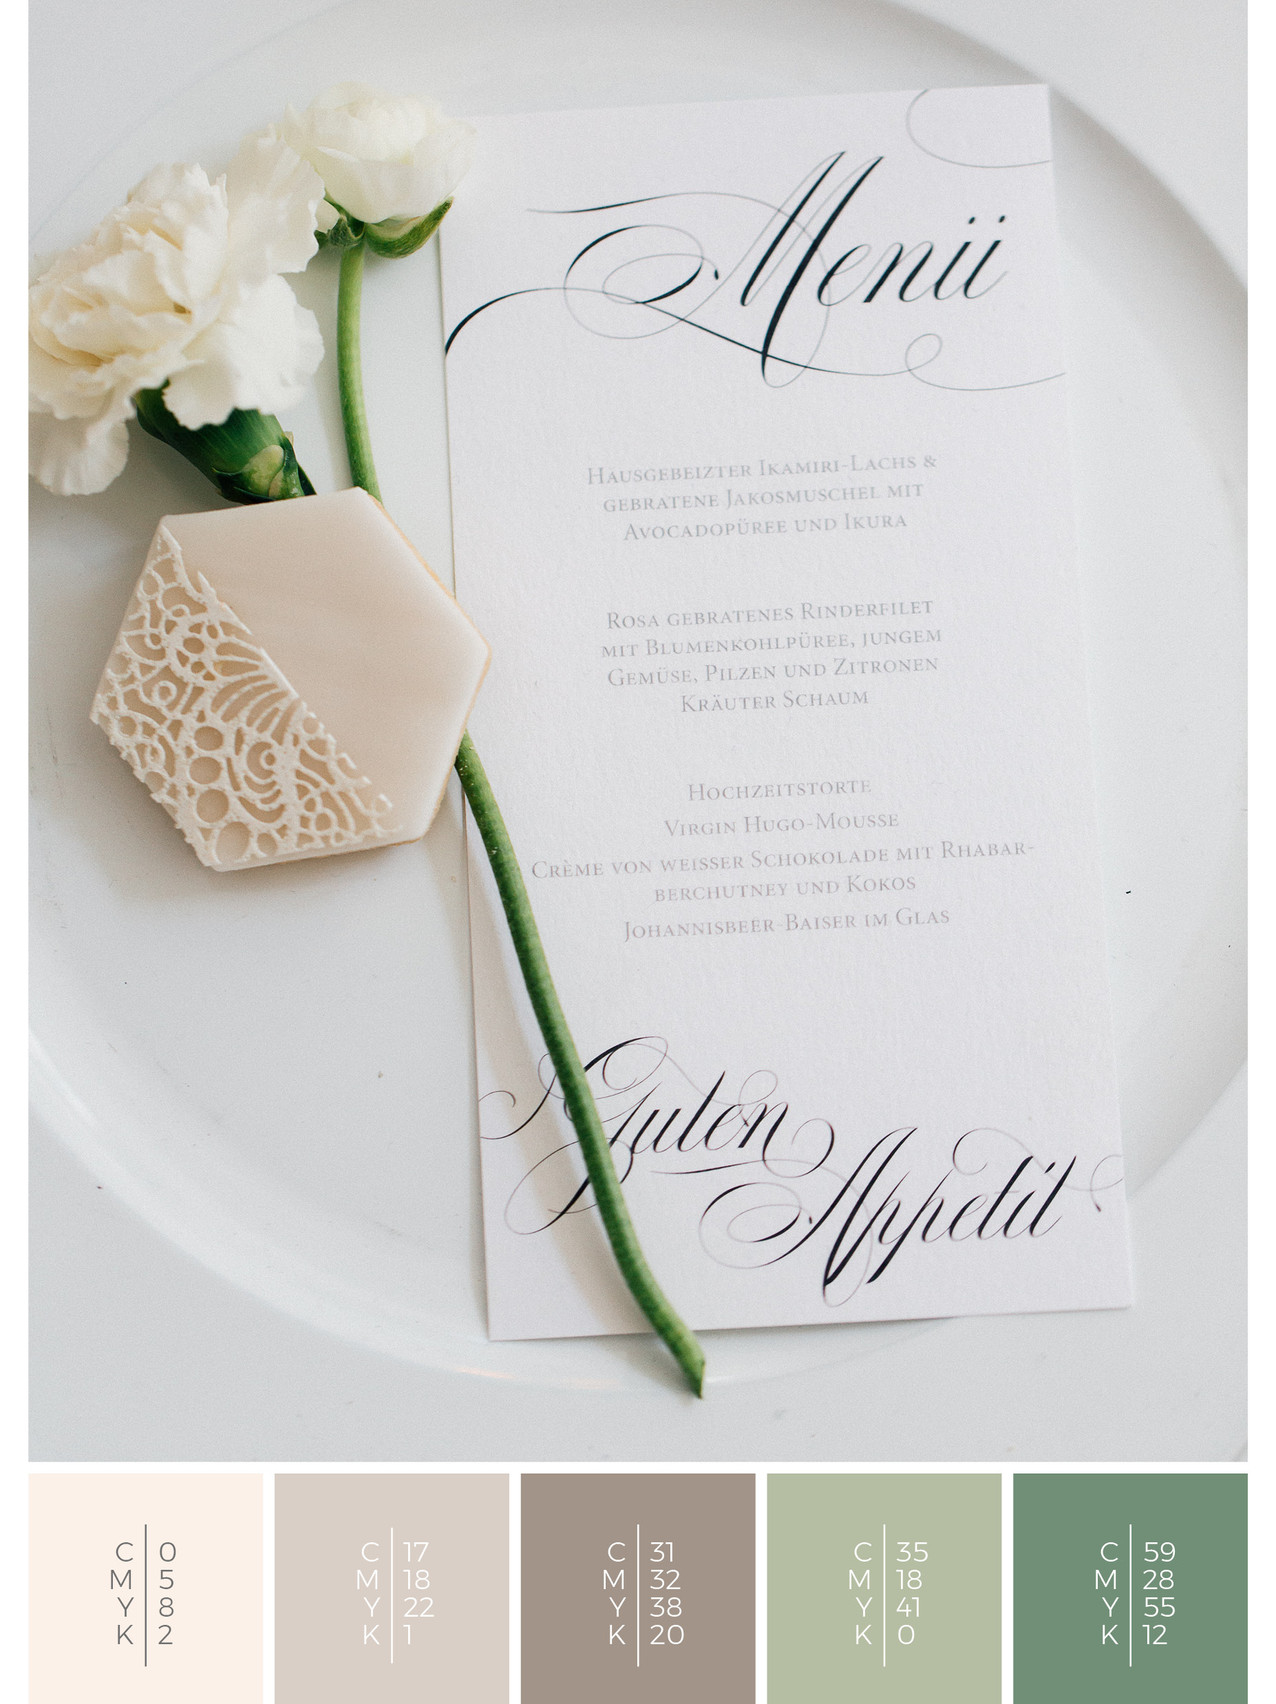 This wedding menu card for a classy wedding fits perfectly to an elegant wedding style in shades of white.